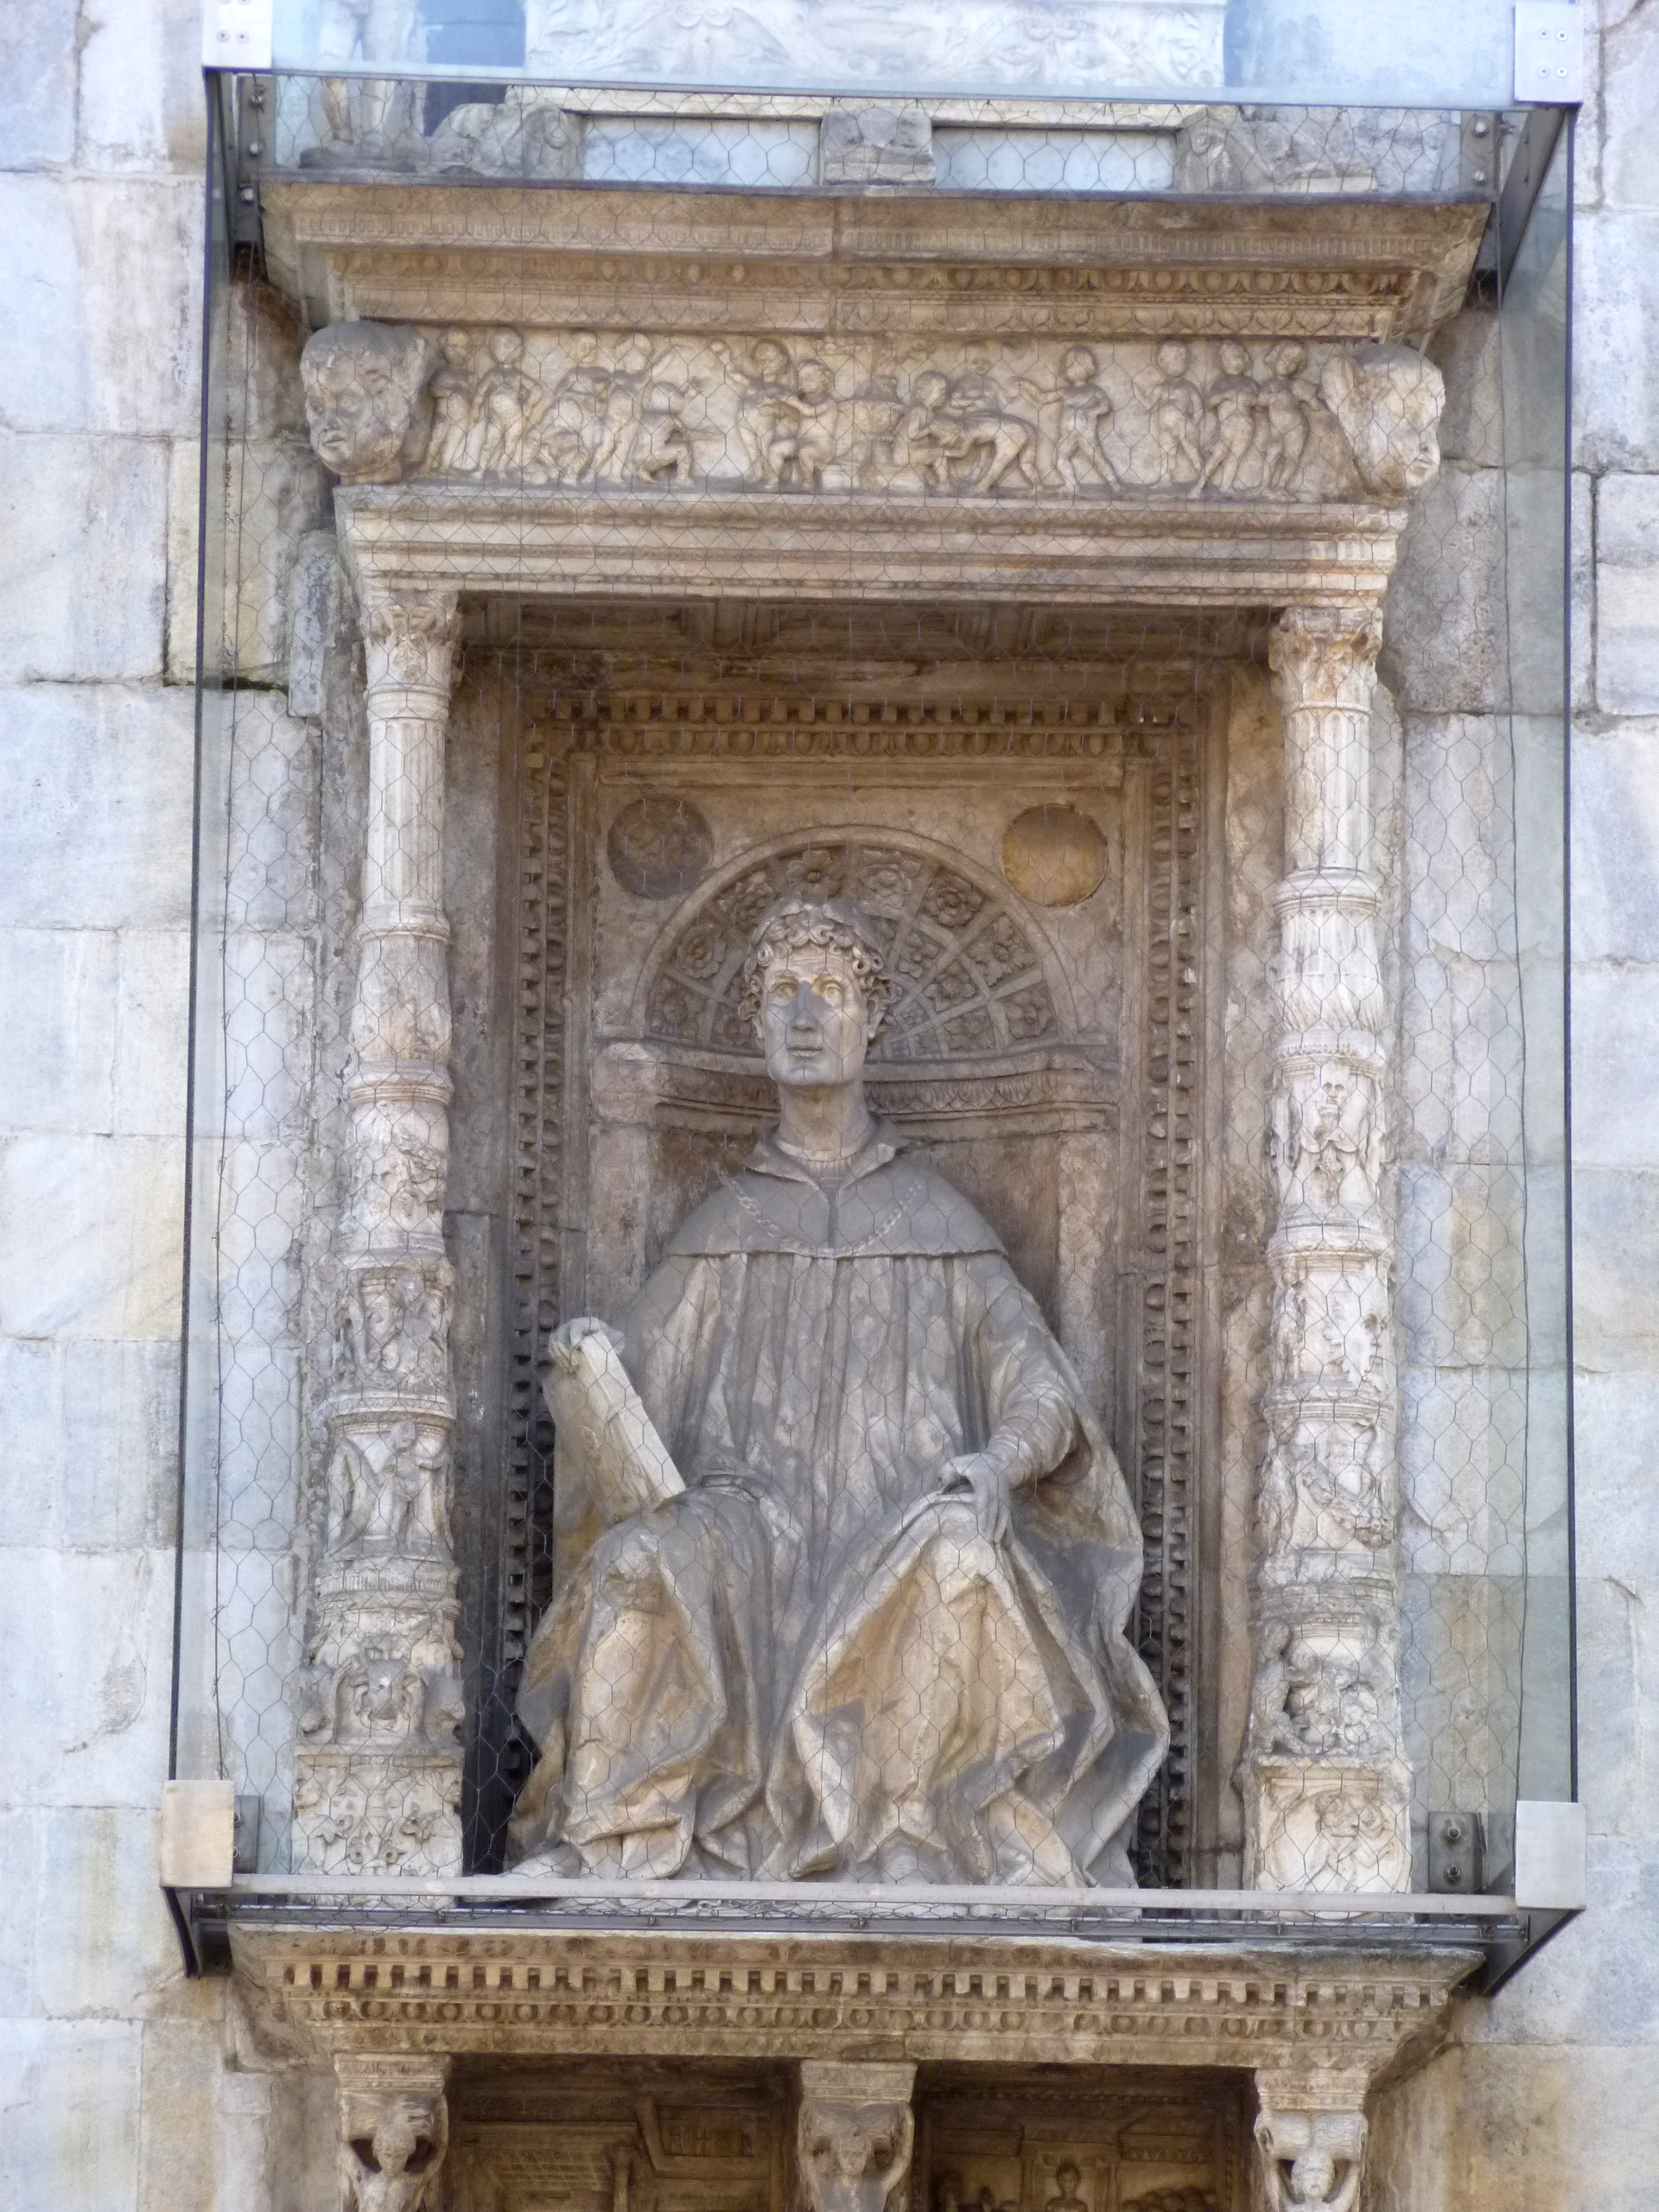 Statue of Pliny the Younger on the facade of Cathedral of S. Maria Maggiore in [[Como]]